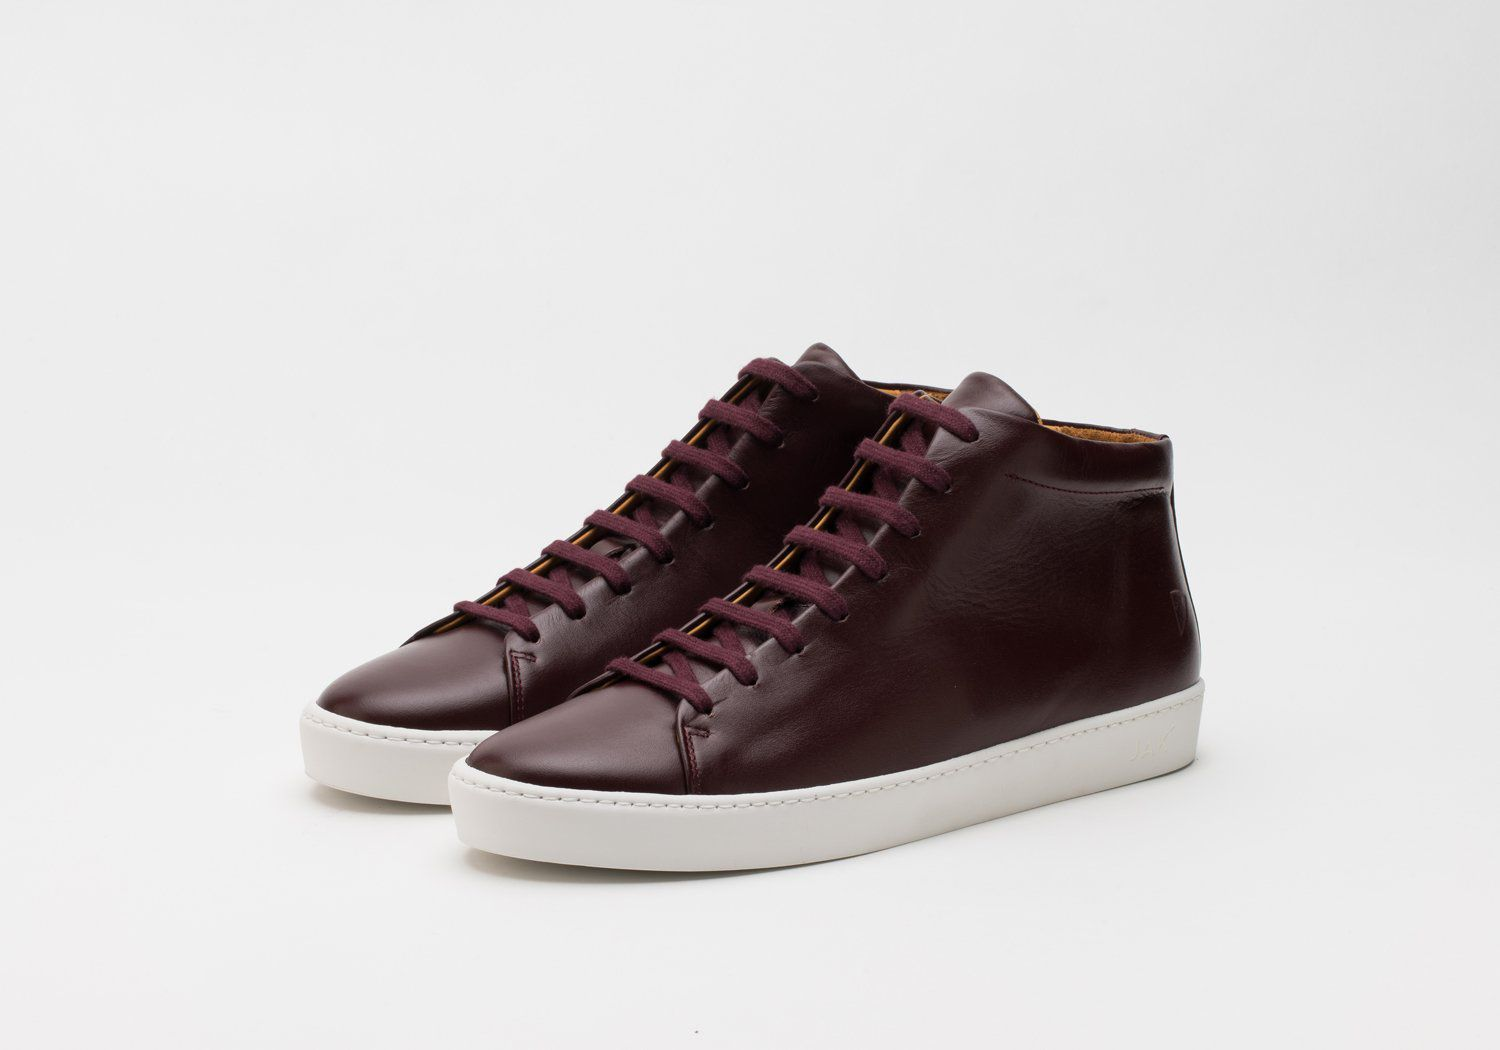 MH Obsession: Why These New Hi-Tops From JAK Are Our New Guilt-Free Shoe